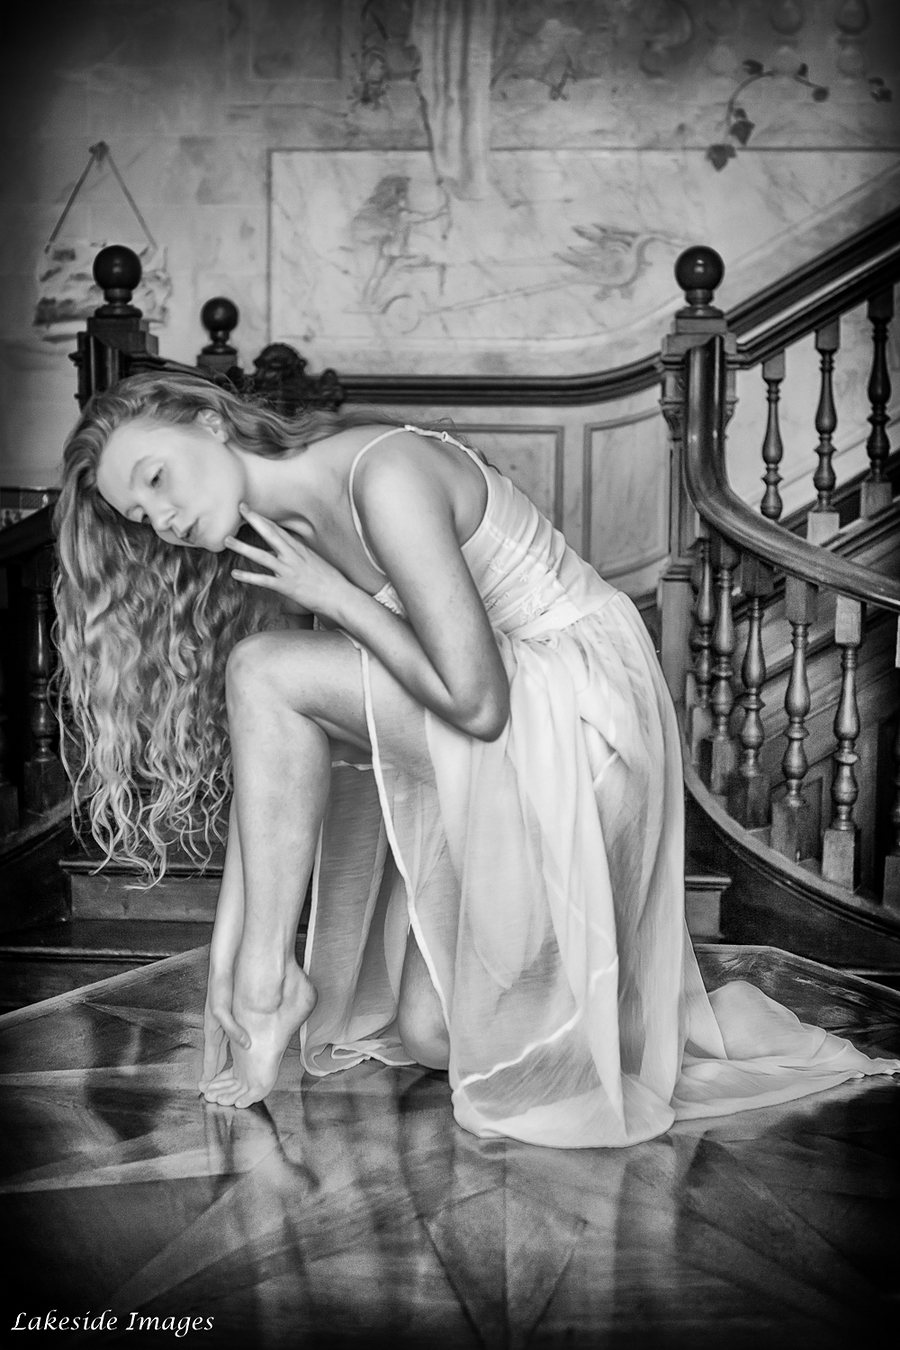 For just a moment I leave the real world and descend into a world of fantasy / Photography by Lakeside Images, Model Lulu Lockhart / Uploaded 19th July 2016 @ 12:58 PM